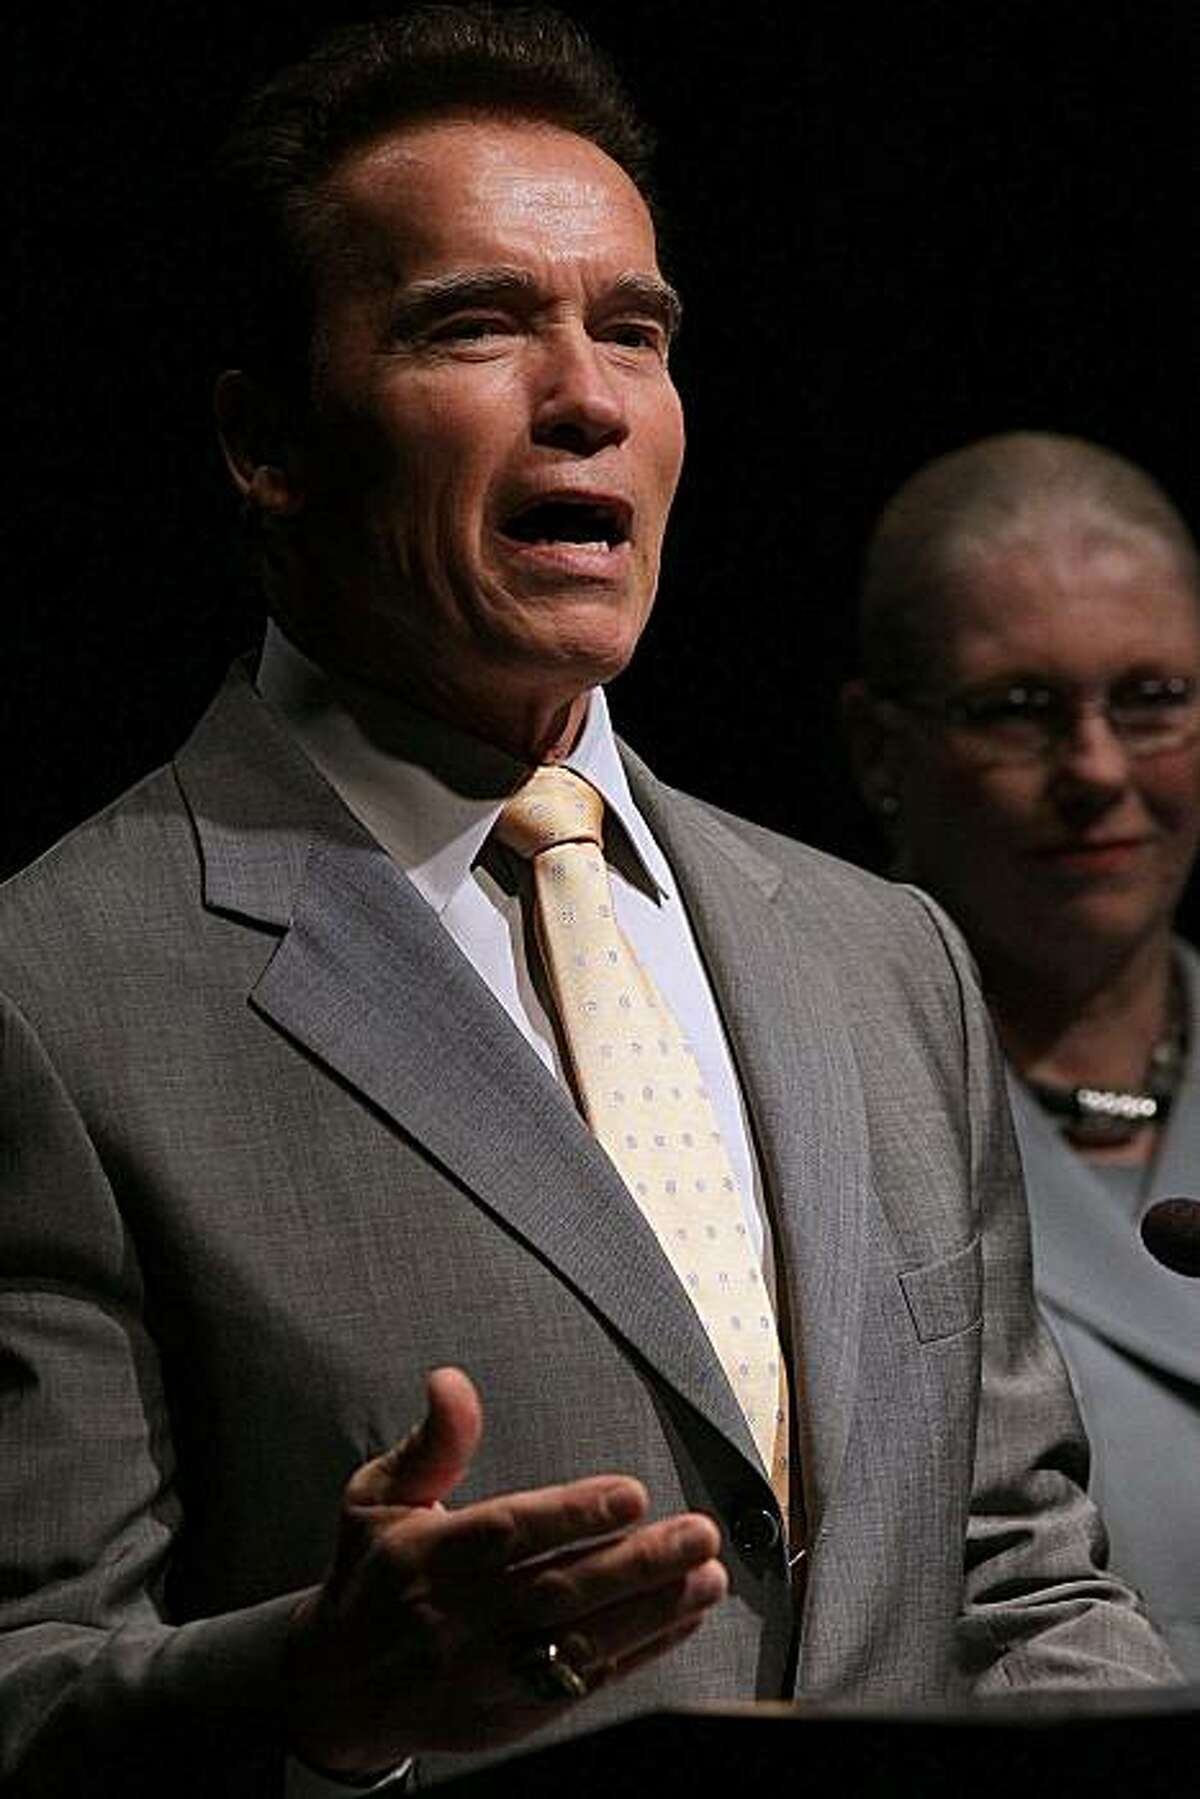 """MOUNTAIN VIEW, CA - MARCH 10: California governor Arnold Schwarzenegger speaks during an Elevate America announcement March 10, 2010 in Mountain View, California. The State of California and Microsoft announced that they will join forces to provide freetechnology training through Microsoft's """"Elevate America"""" program that will provide over 166,000 vouchers for free online technology training and certification."""